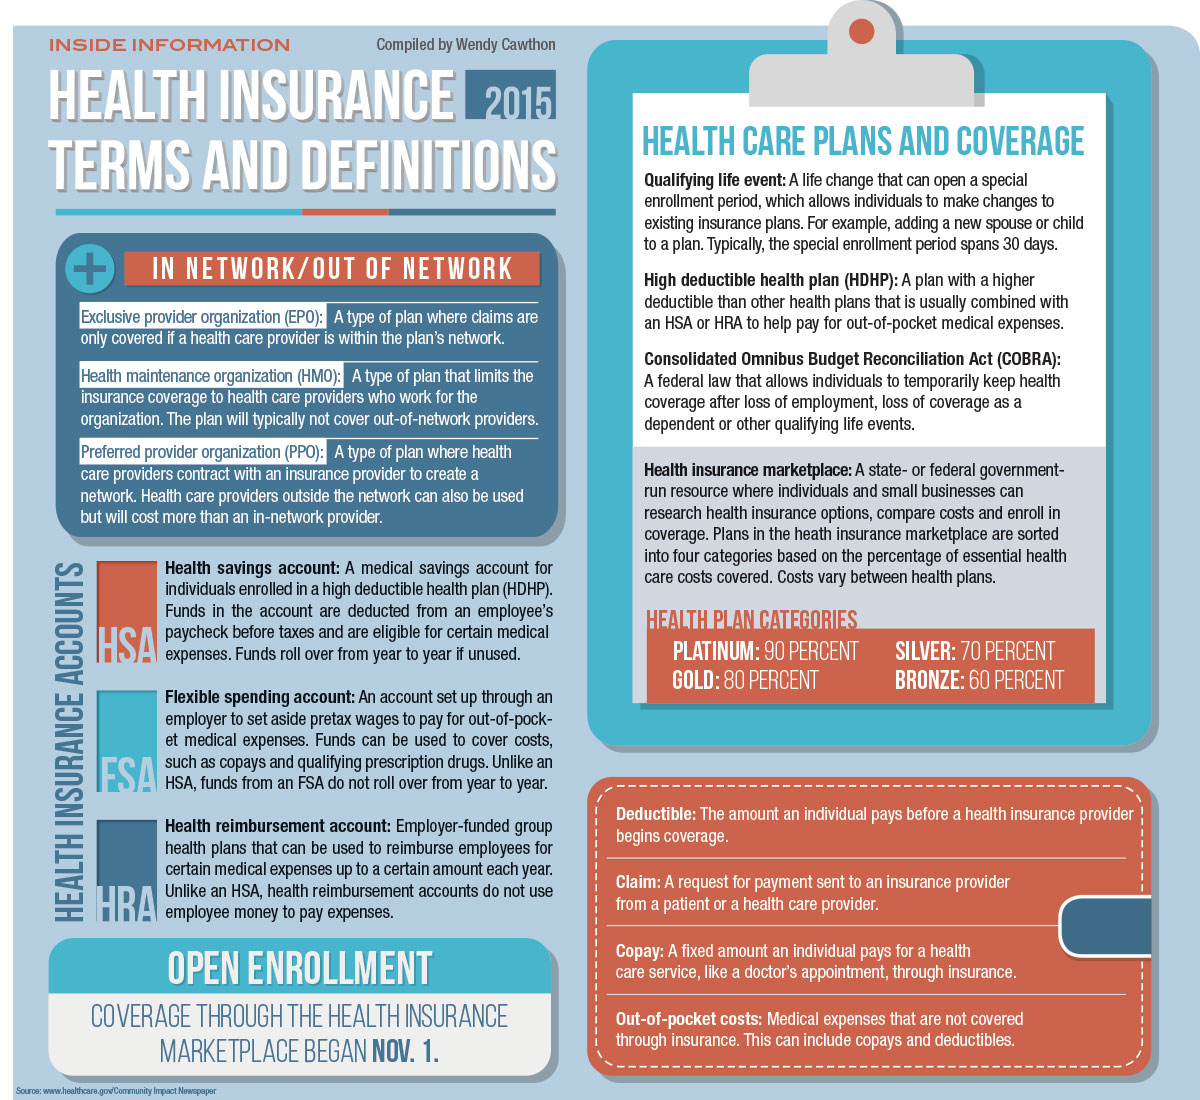 A breakdown of health insurance terms and definitions